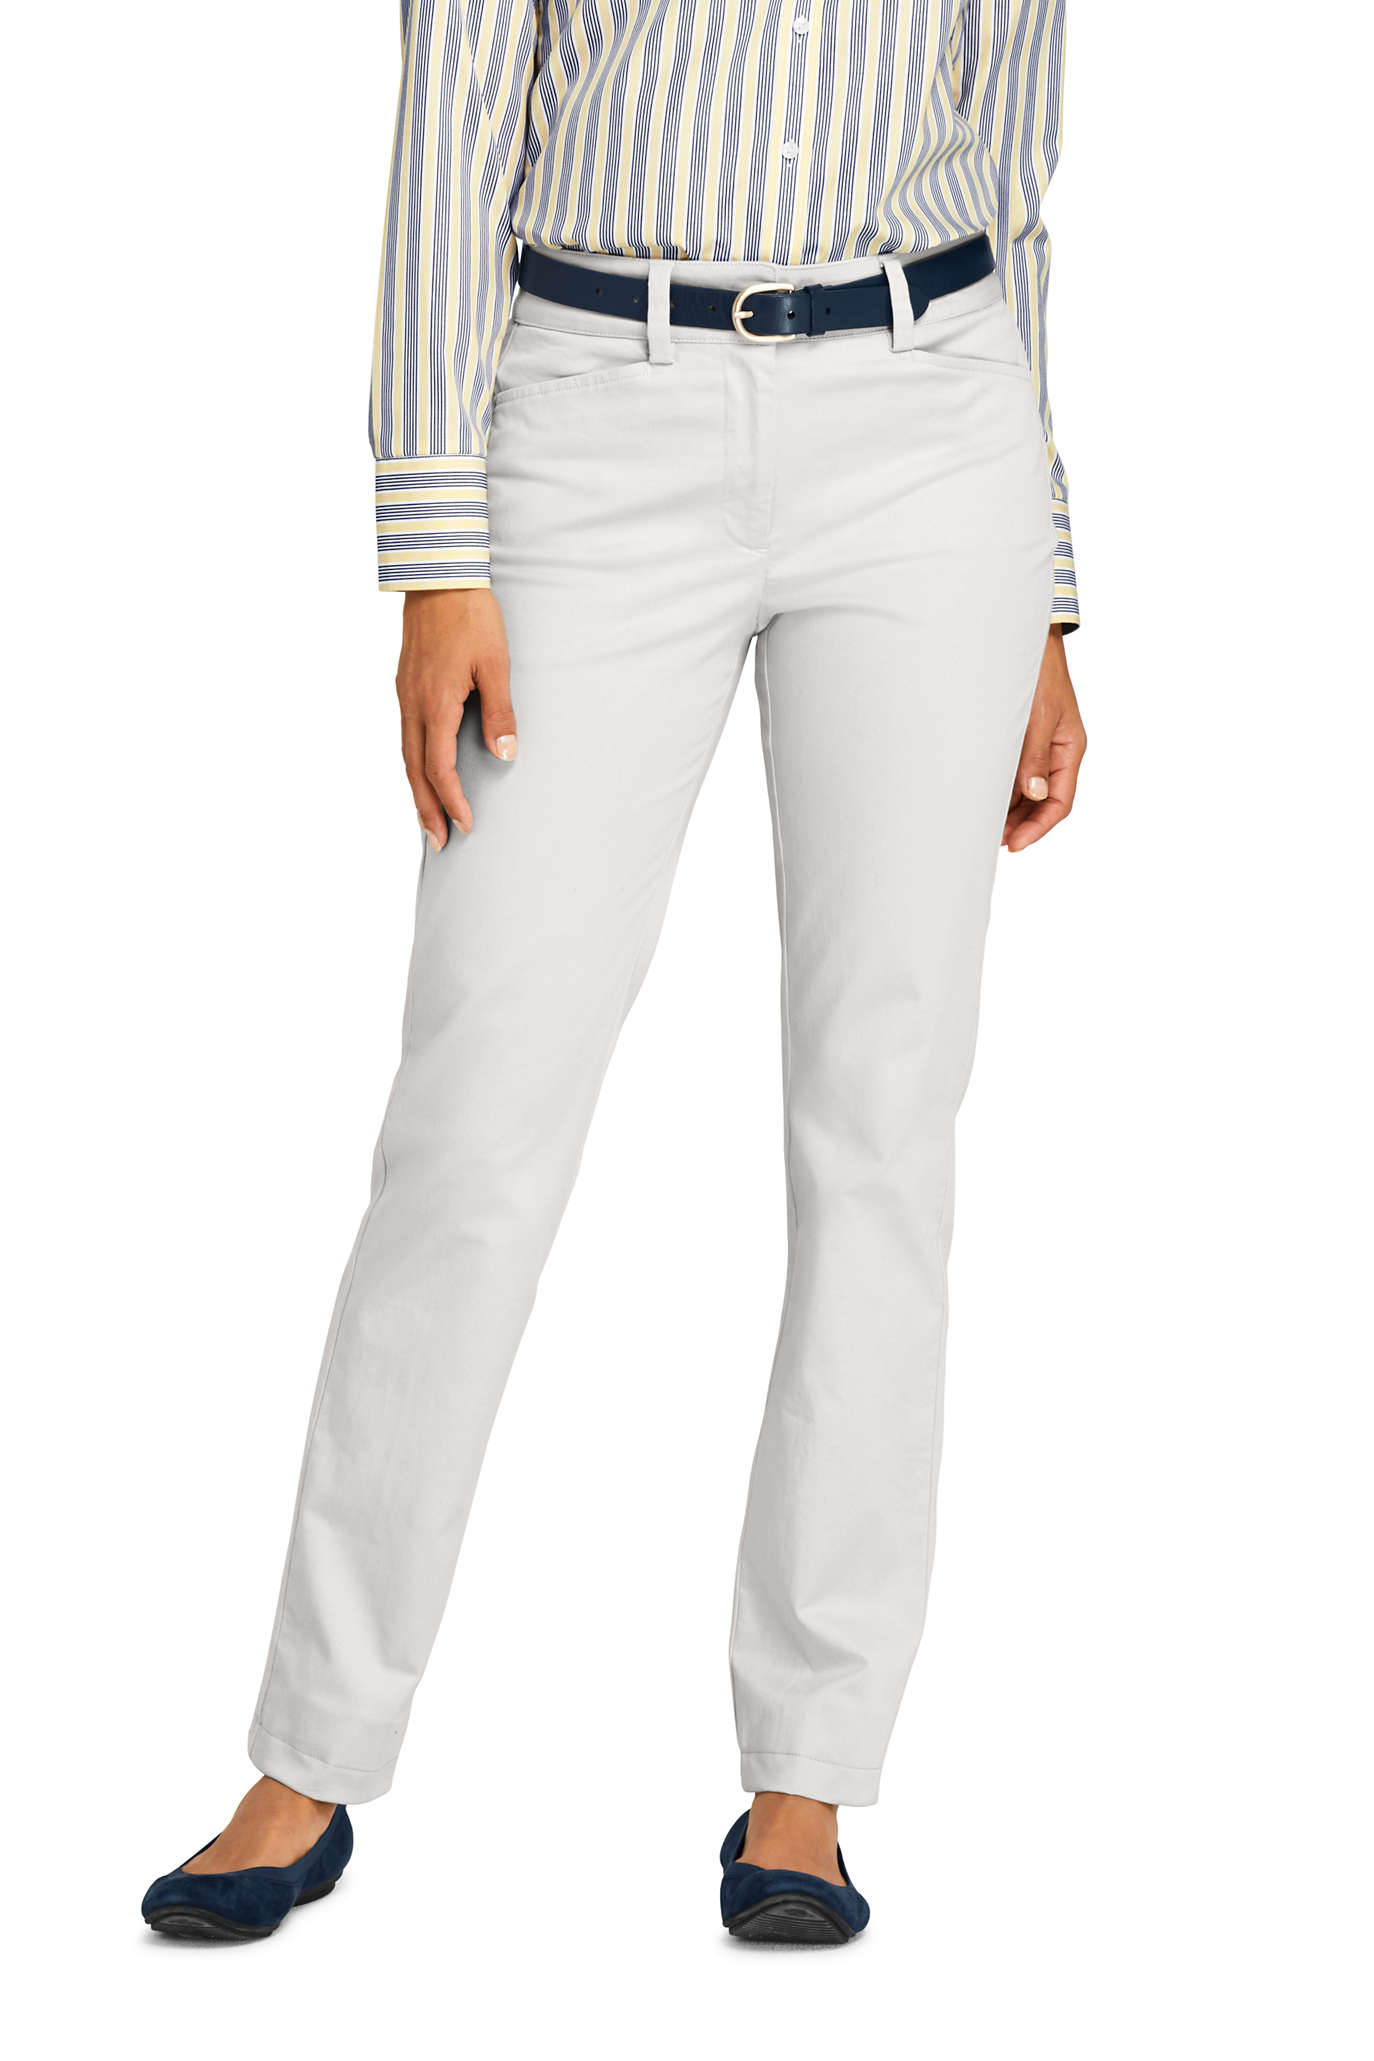 88034b69869 Women s Mid Rise Cargo Chino Pants